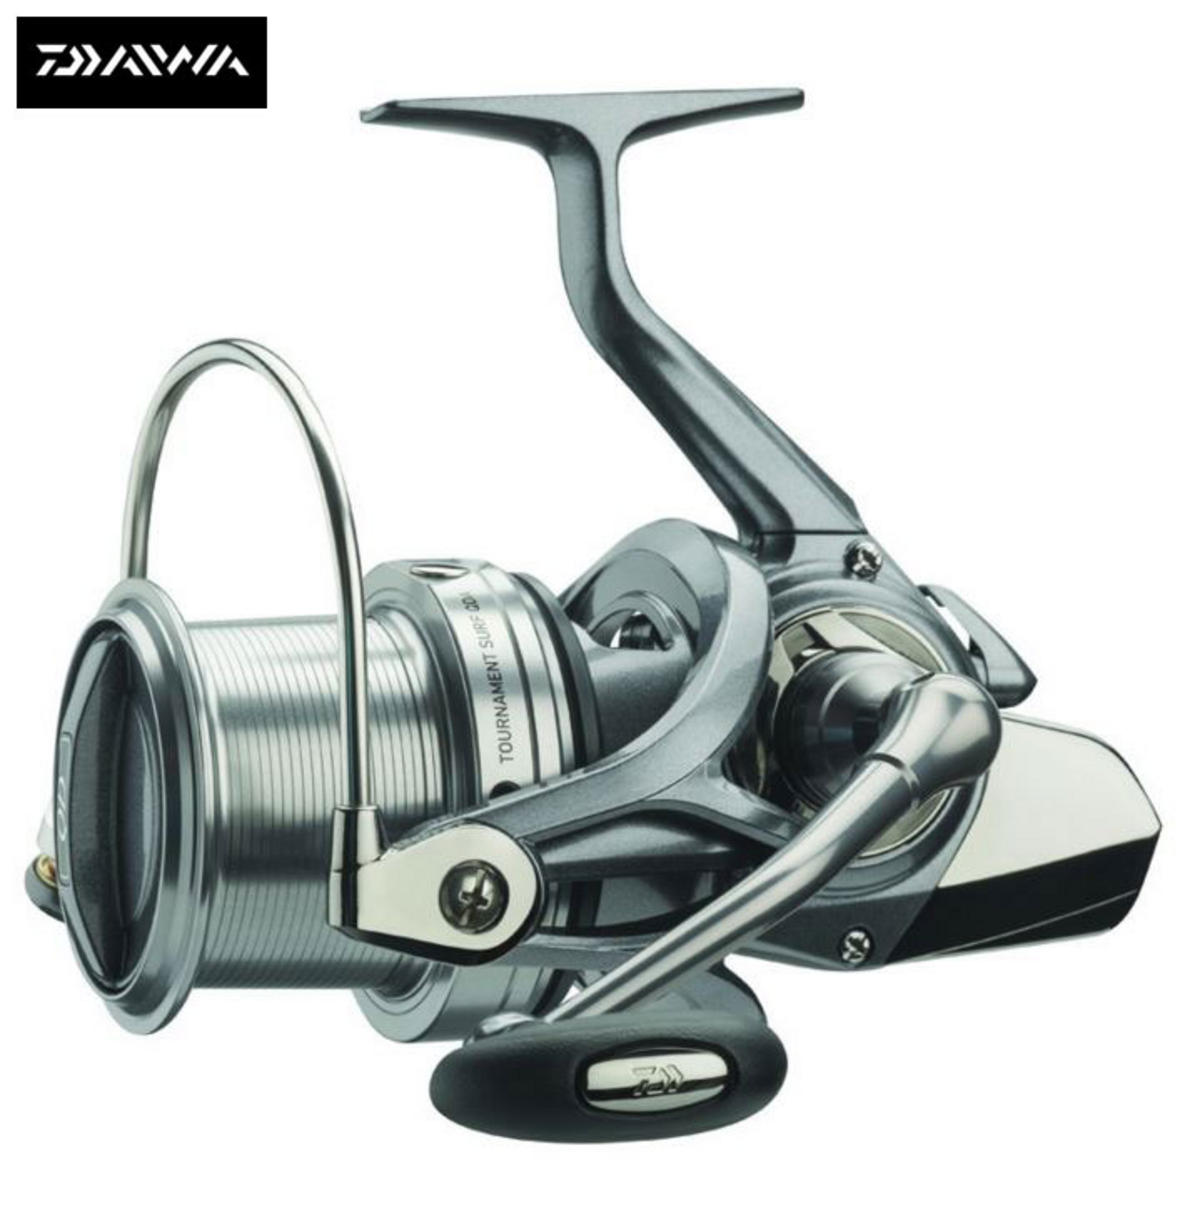 NEW DAIWA TOURNAMENT SURF 4500 QDA FISHING REEL Model No. TNS4500QDA